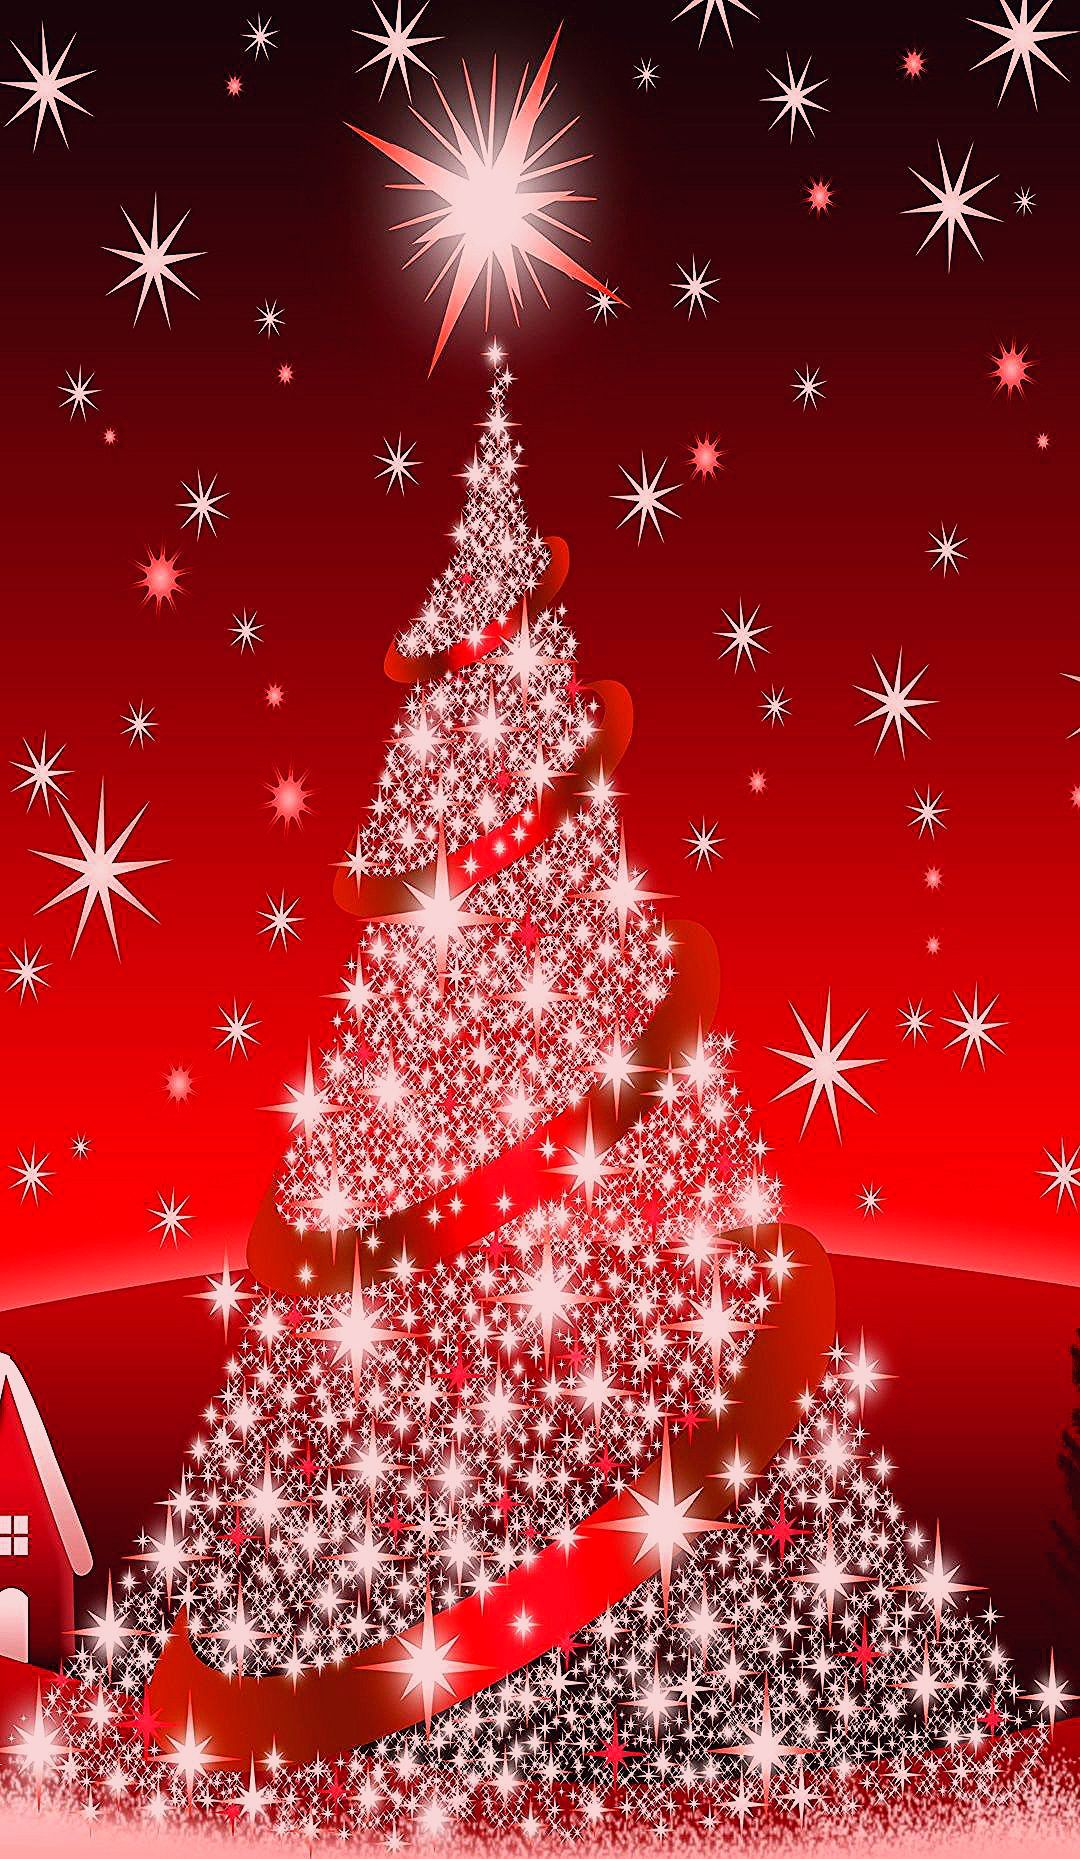 Merry Christmas Apple Iphone 5s Hd Wallpapers Available For Free Download Christmas Pictures Merry Christmas Wallpaper Christmas Tree Wallpaper